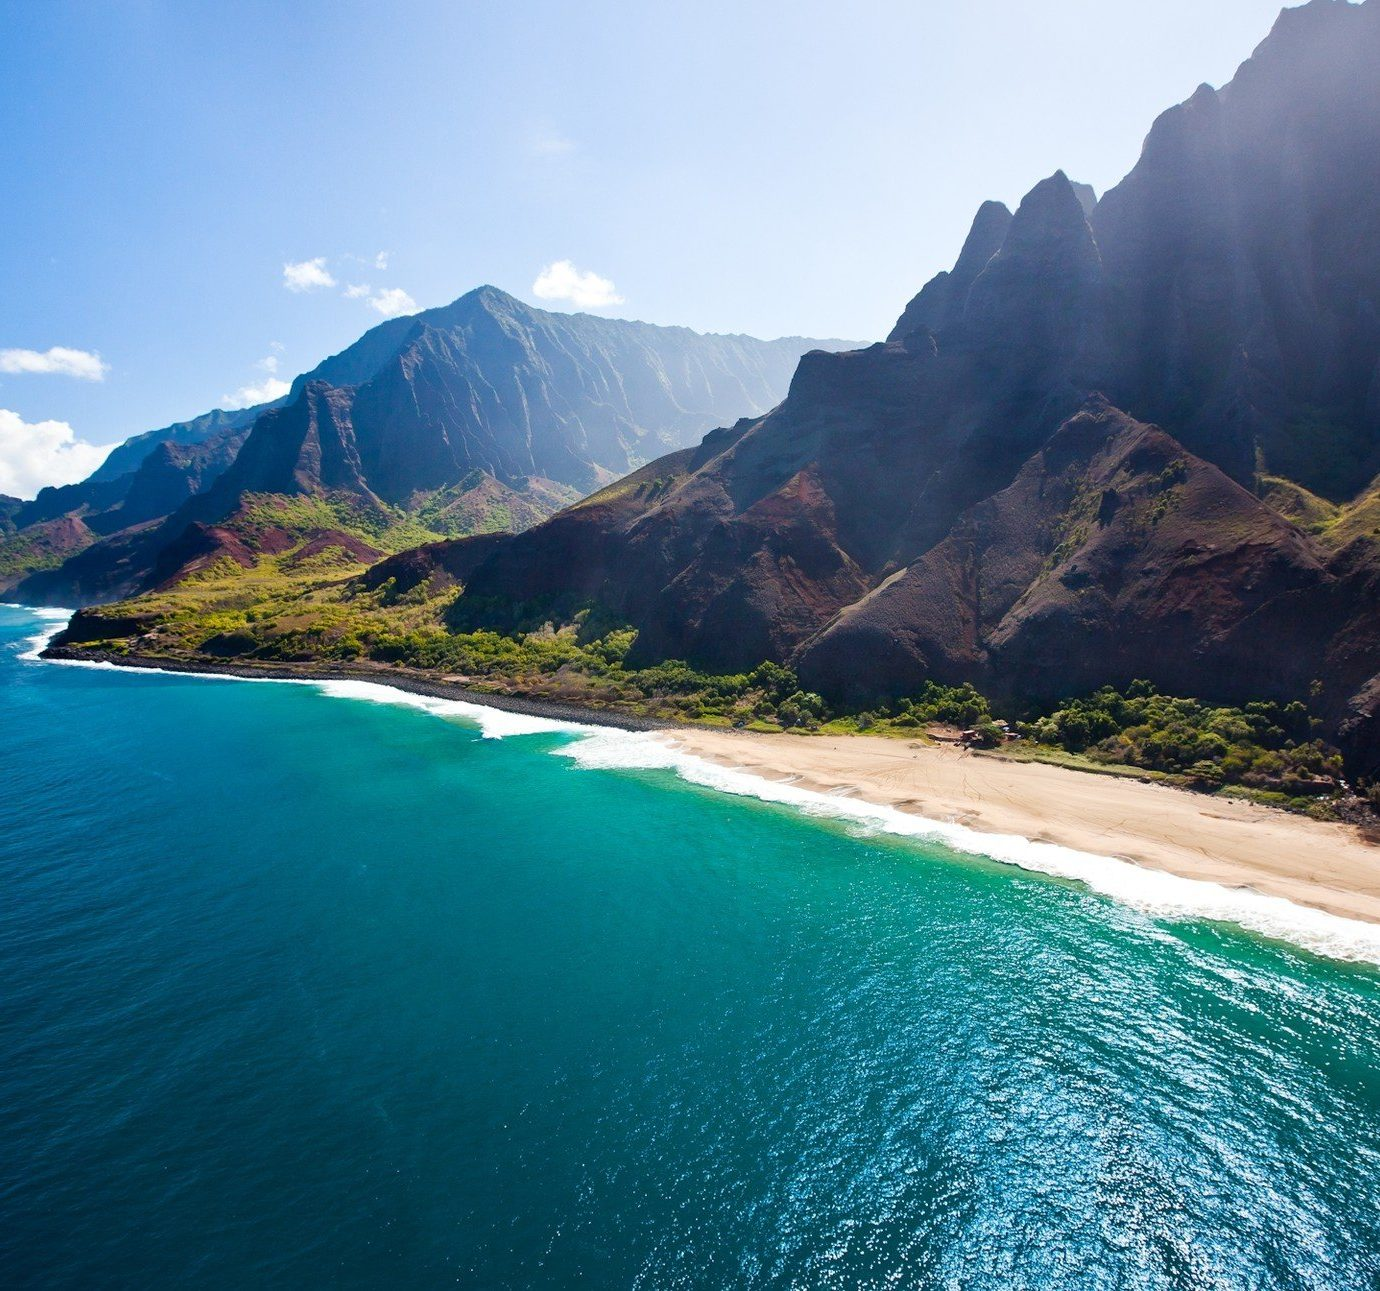 Trip Ideas mountain water outdoor Nature sky geographical feature landform Coast Sea body of water Ocean vacation bay Lake cliff fjord cape terrain Beach mountain range islet surrounded Island hillside